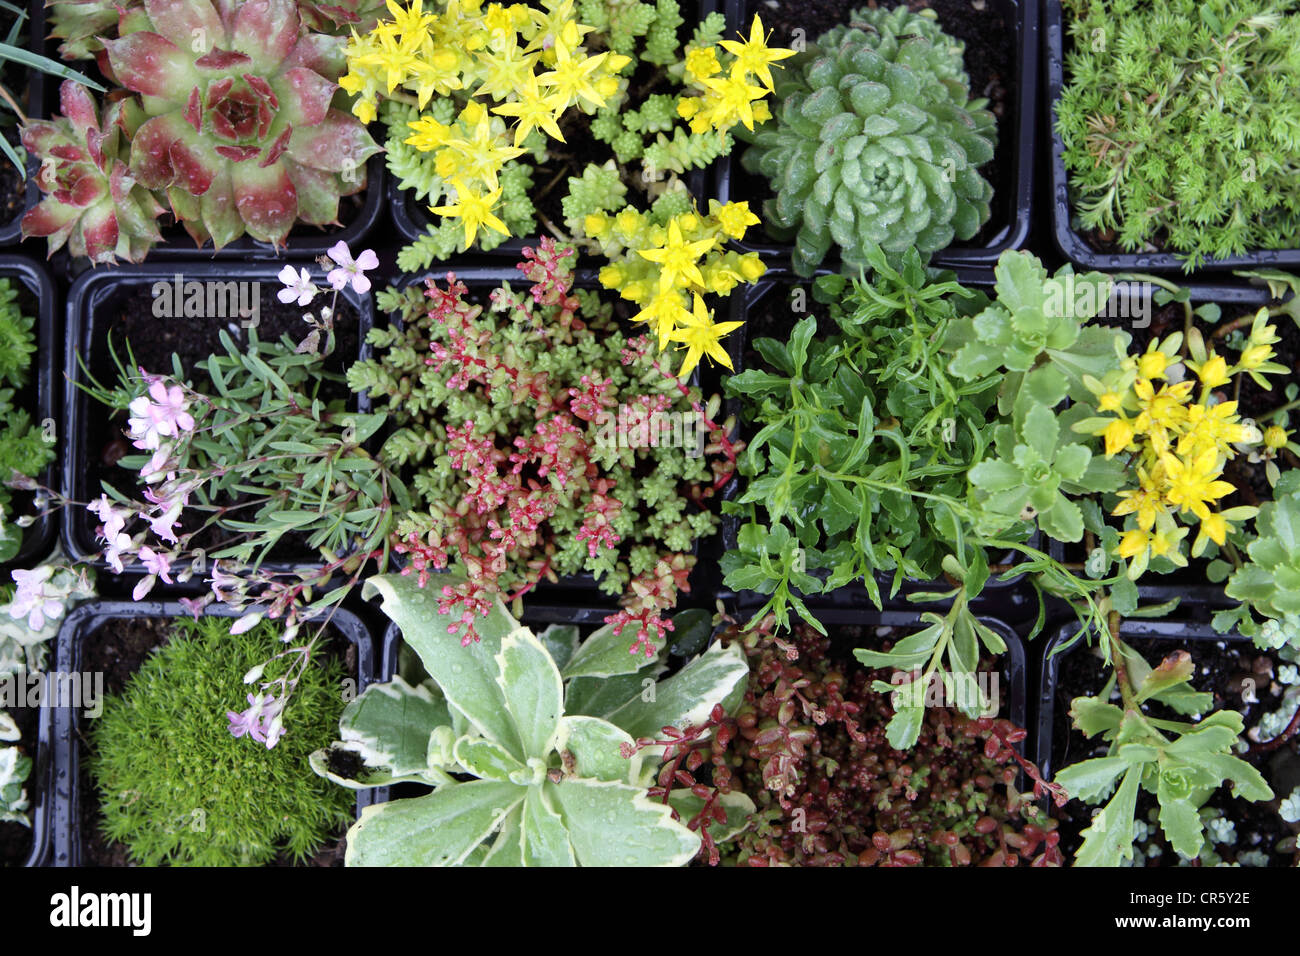 Alpines A Variety Of Small Alpine Plants Stock Photo 48688822 Alamy